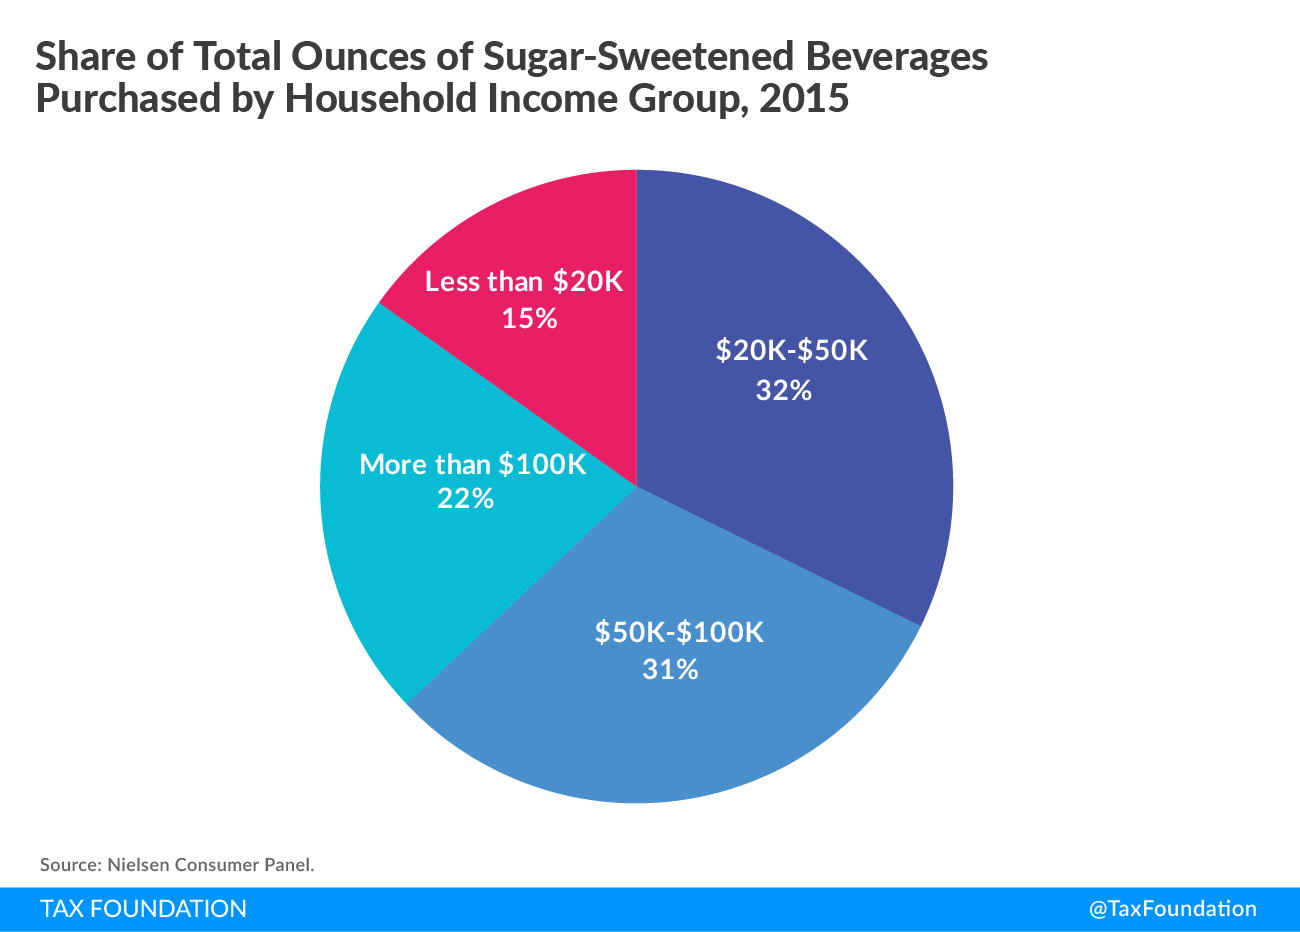 Share of Total Ounces of Sugar-Sweetened Beverages Purchased by Household Income Group Pie Chart